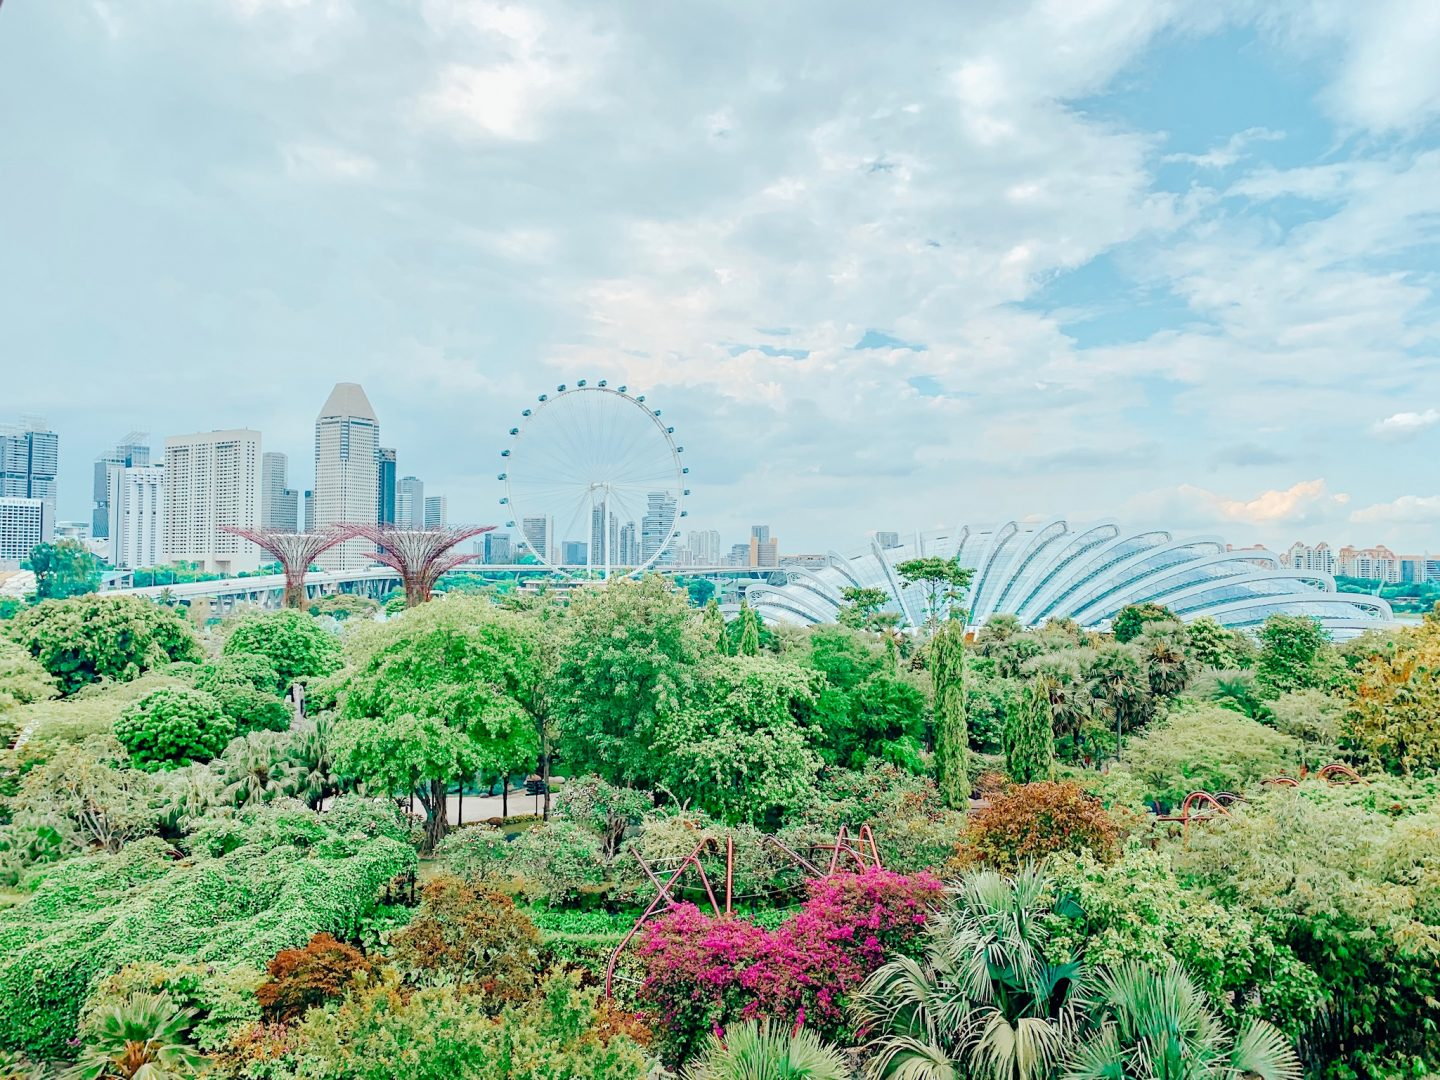 View from the Skywalk in the Supertree Grove in Singapore!